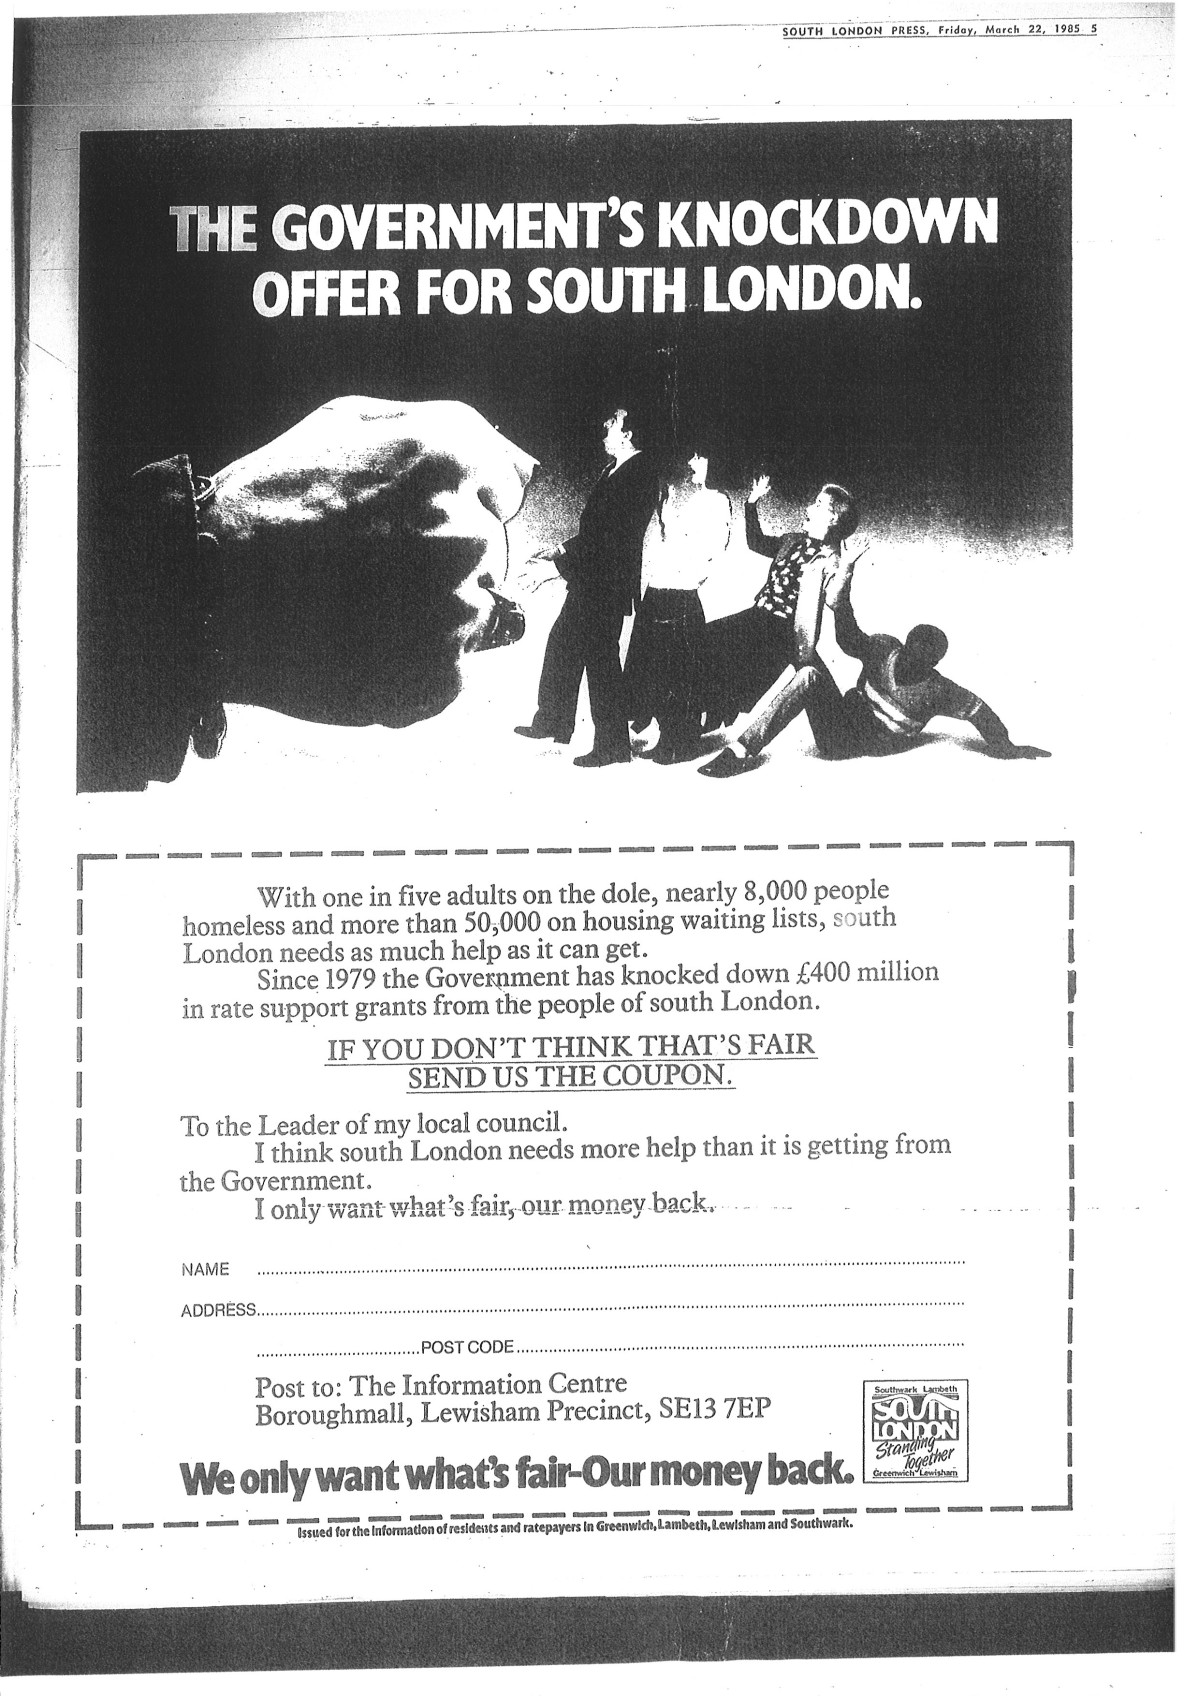 The government's knock down offer for South London (1985)